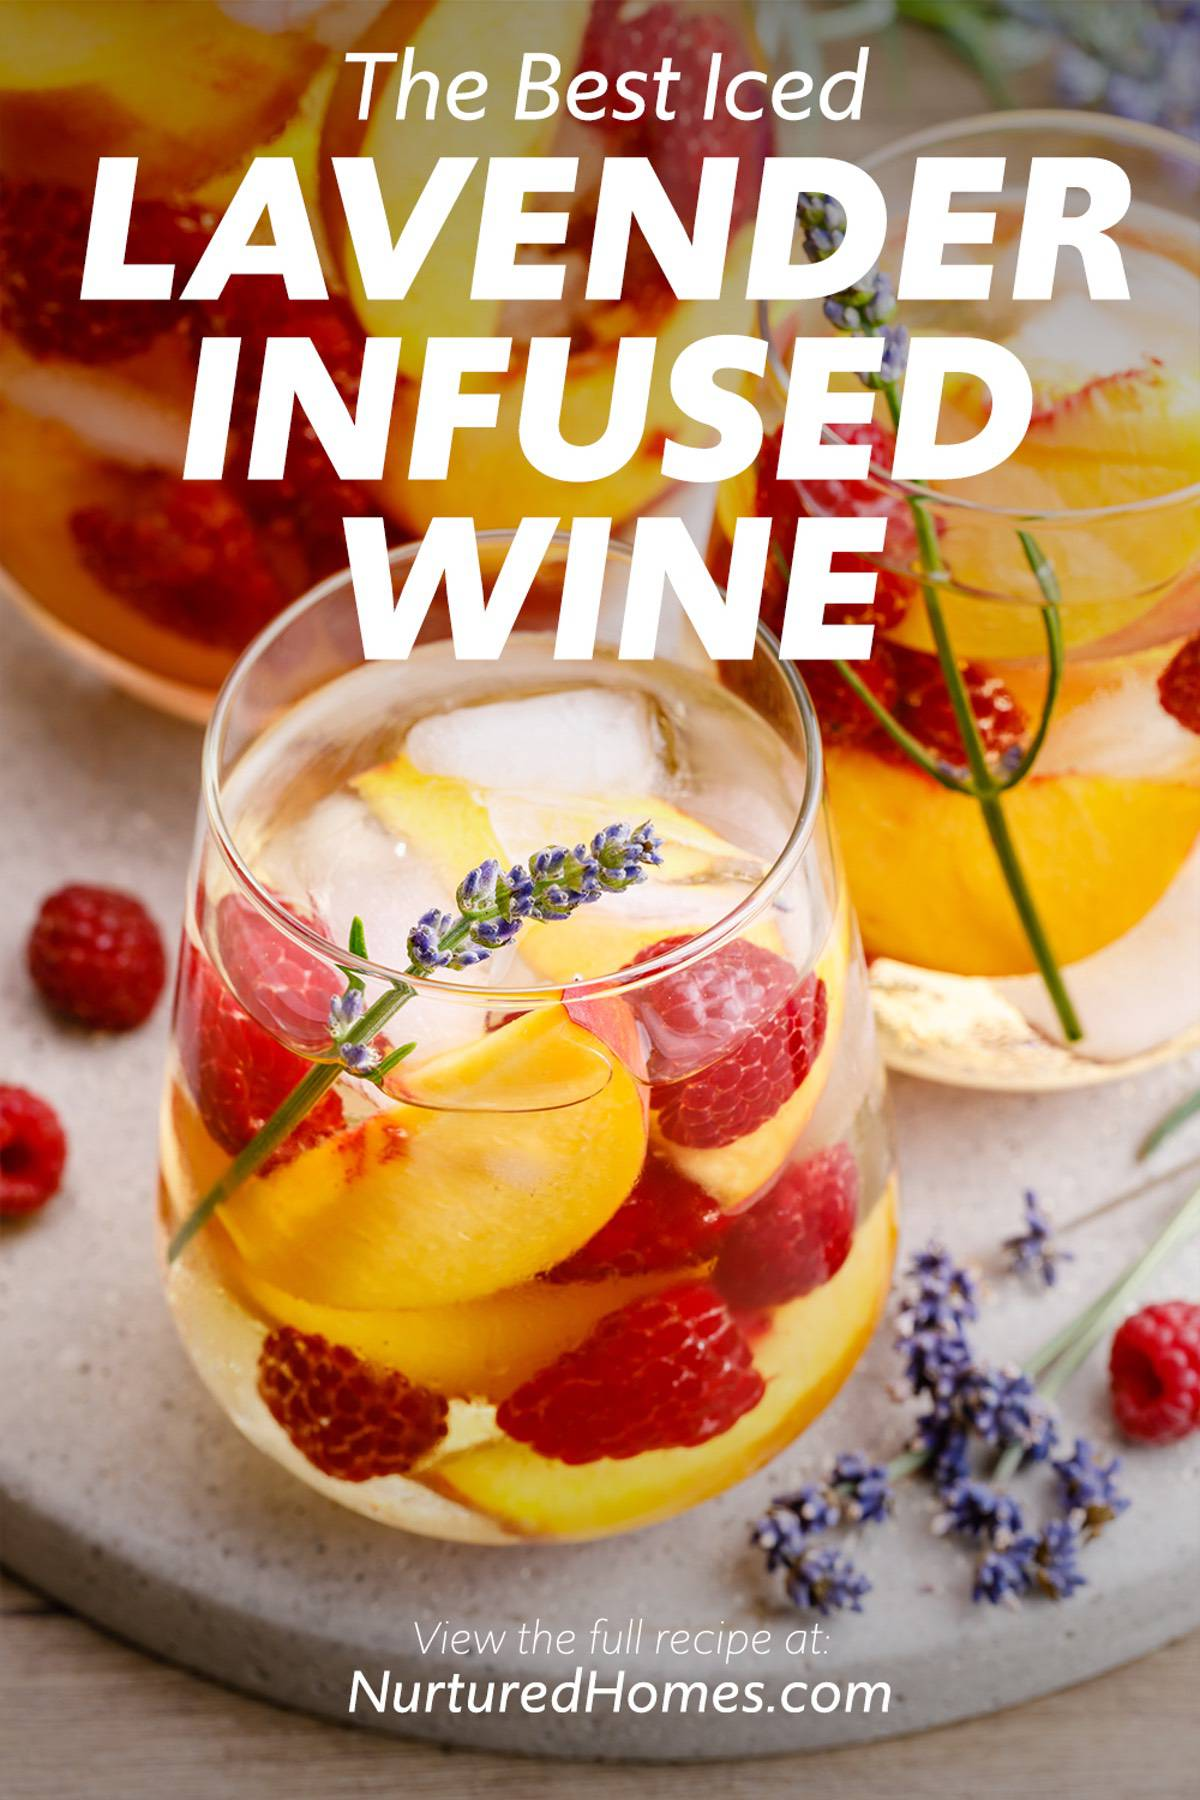 How to Make Iced Lavender-Infused Wine